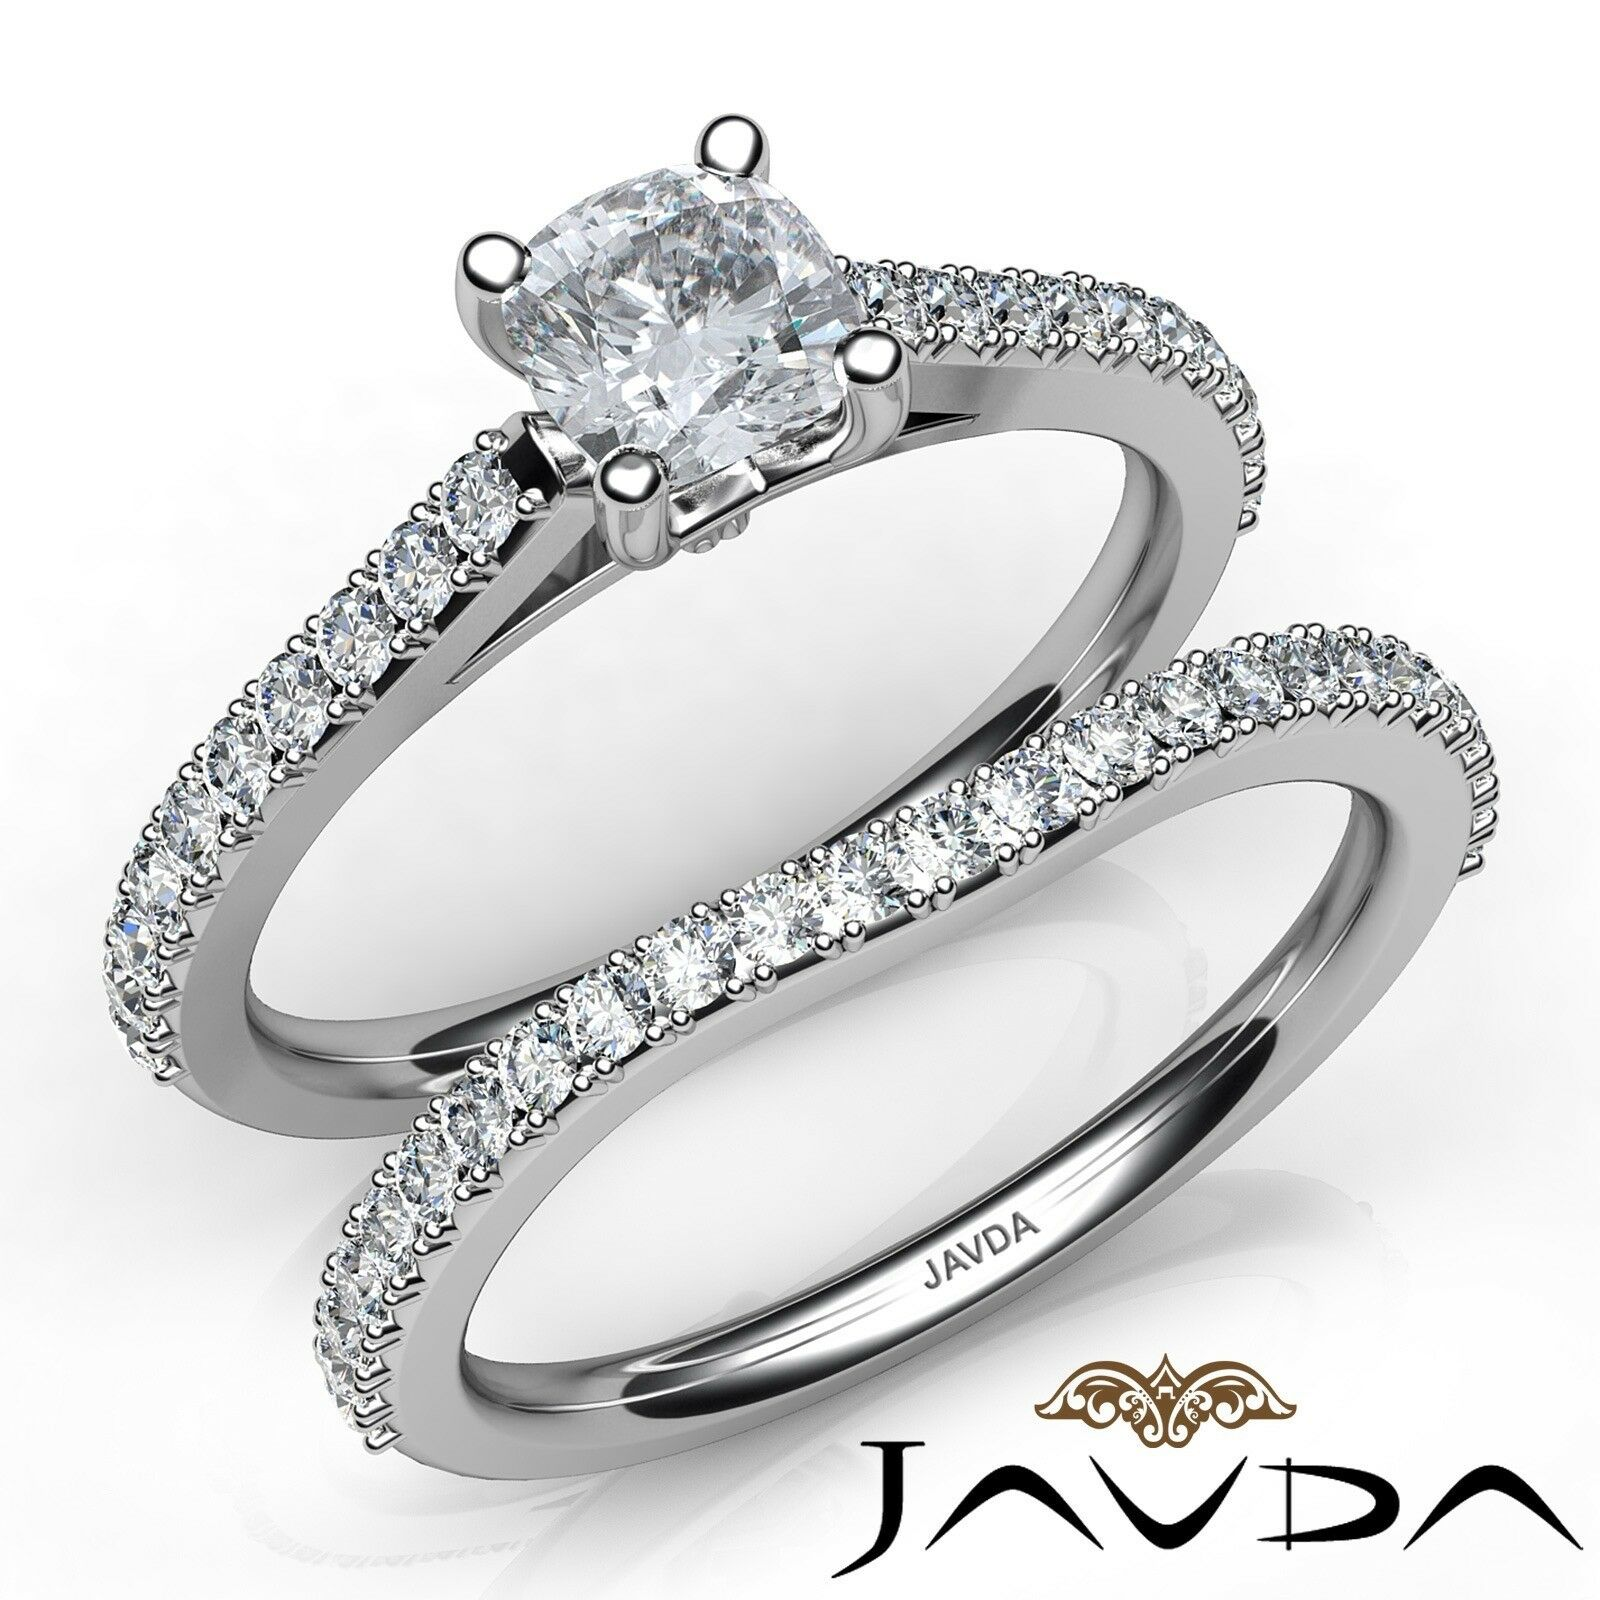 1.34ctw Double Prong Bridal Set Cushion Diamond Engagement Ring GIA H-VS2 W Gold